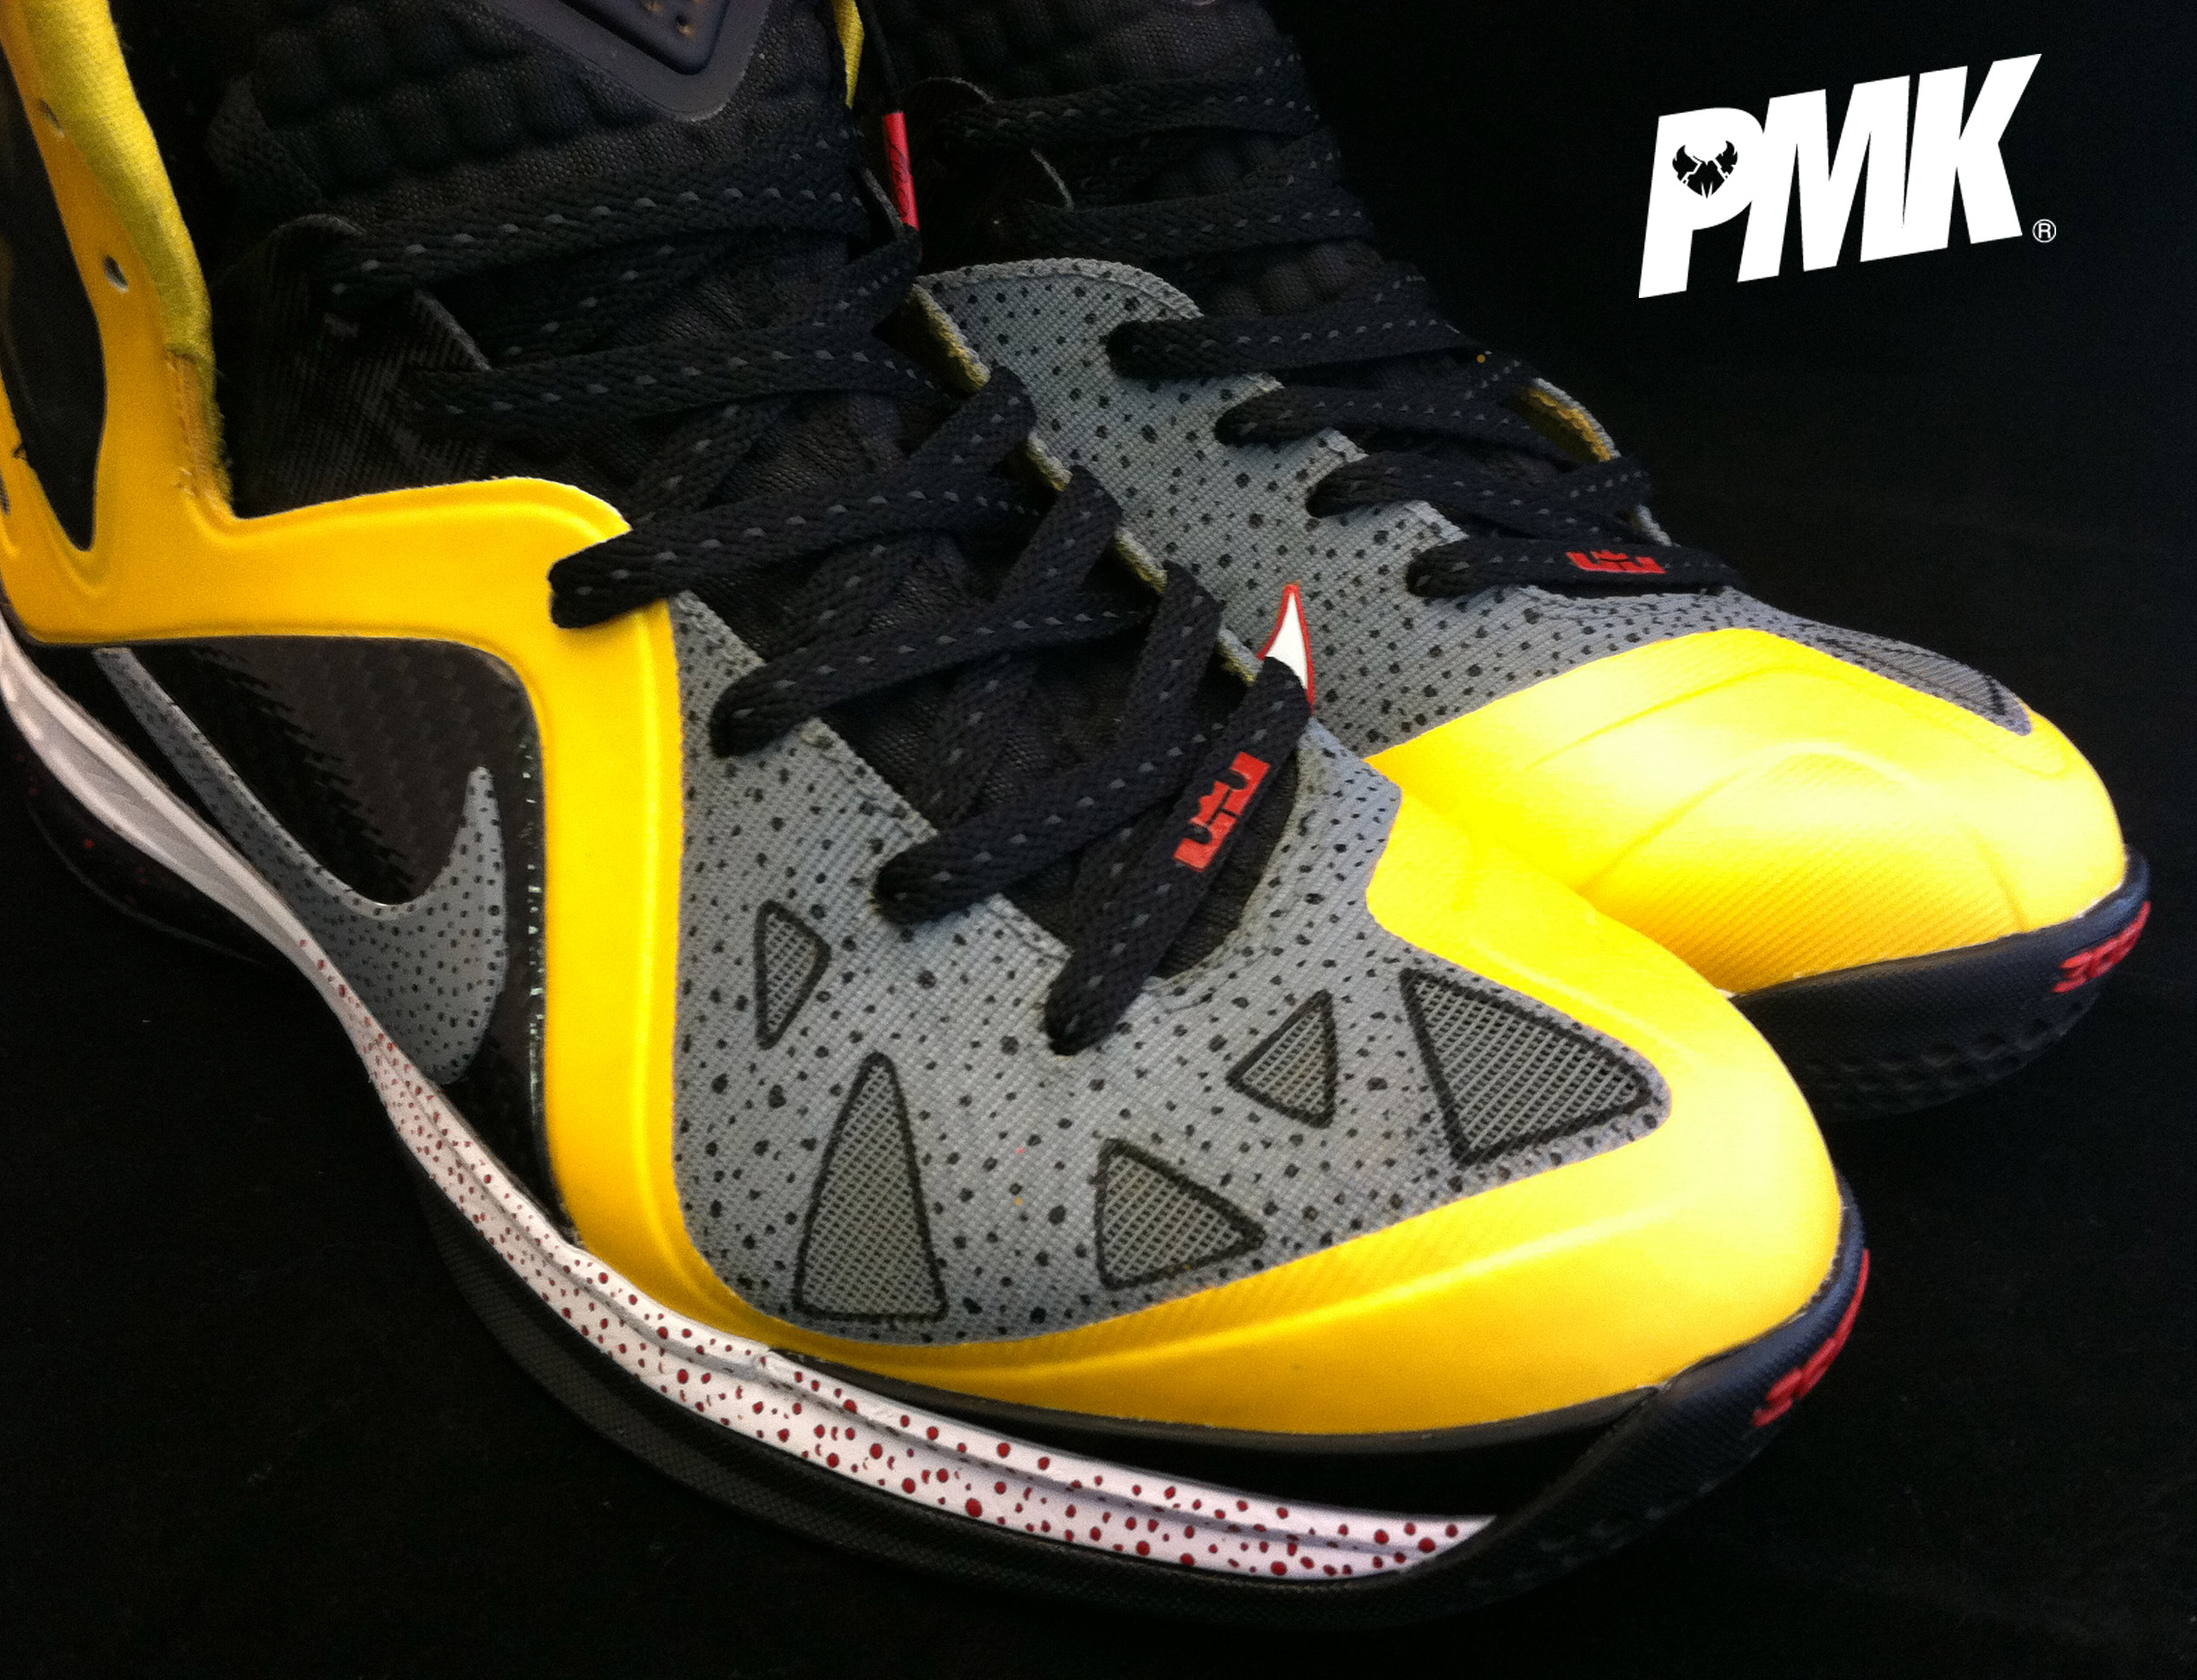 concrete-nike-lebron-9-ps-taxi-elite-customs-by-pmk-4